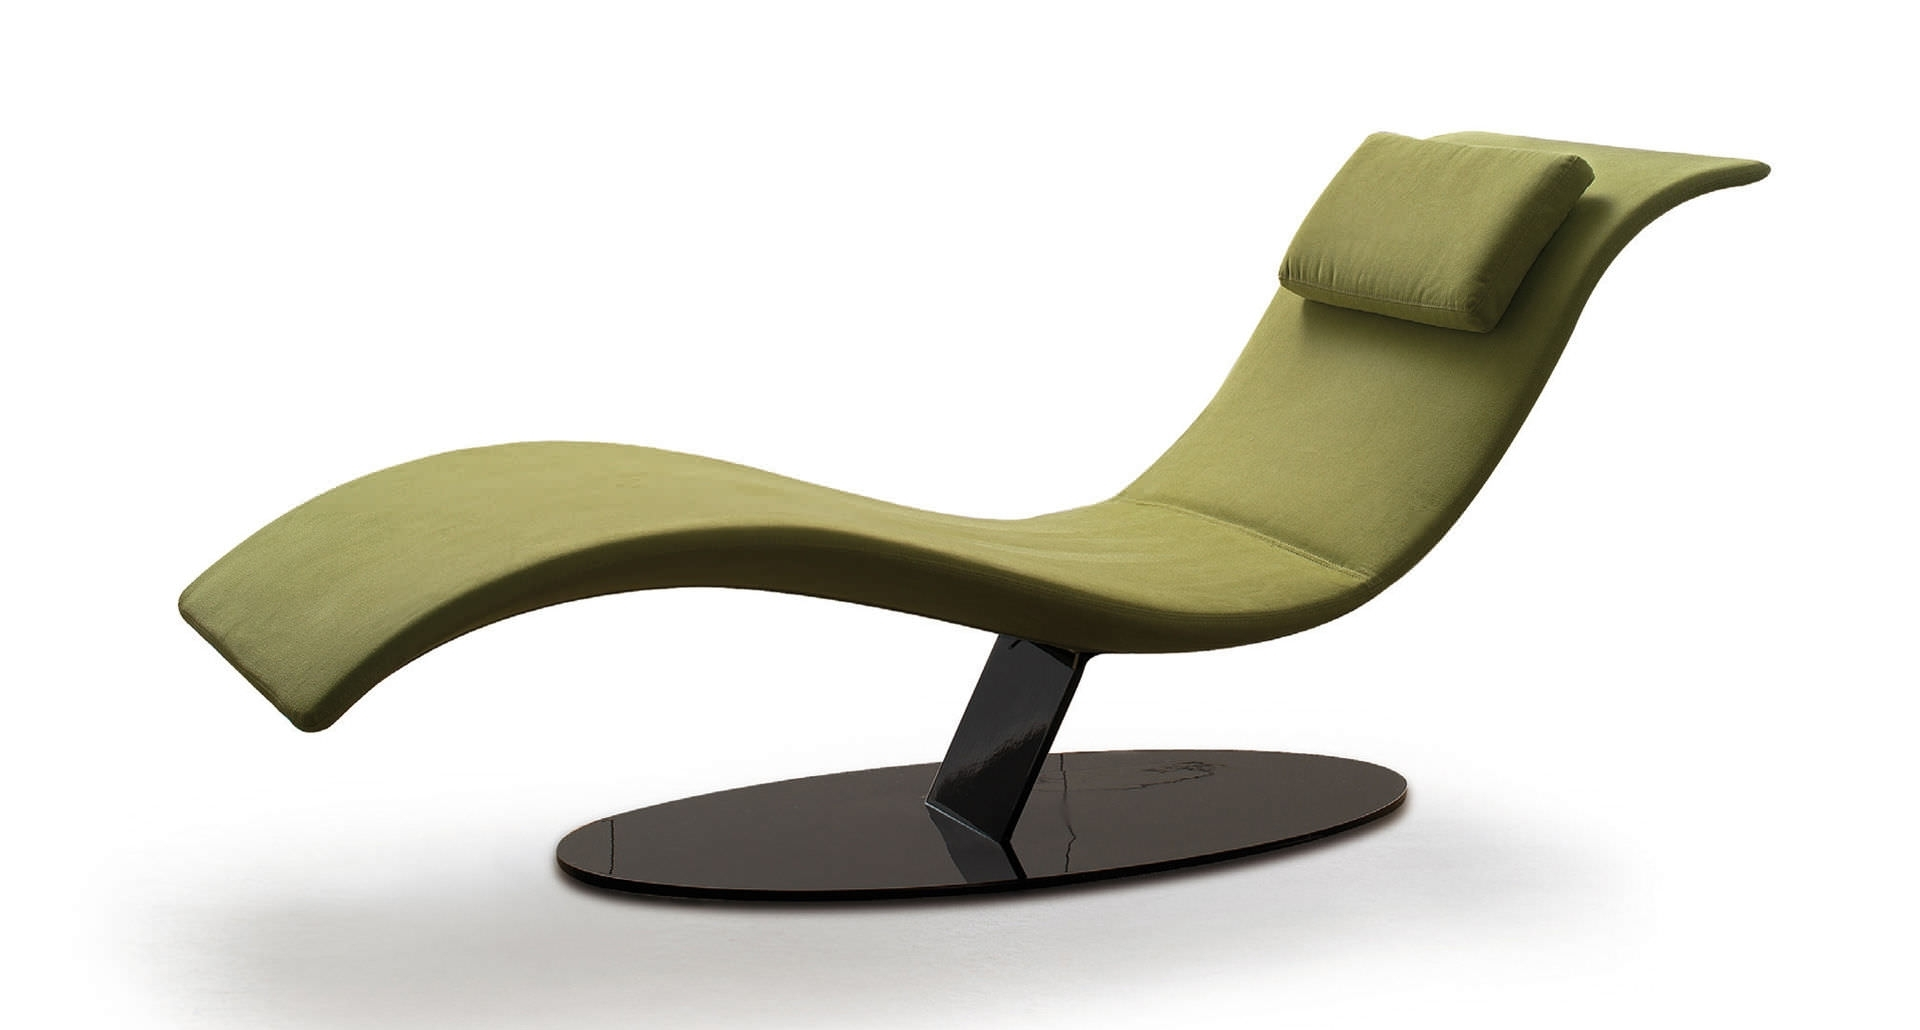 Green Chaise Lounge Chairs In Famous Fresh Contemporary Pool Chaise Lounges # (View 2 of 15)